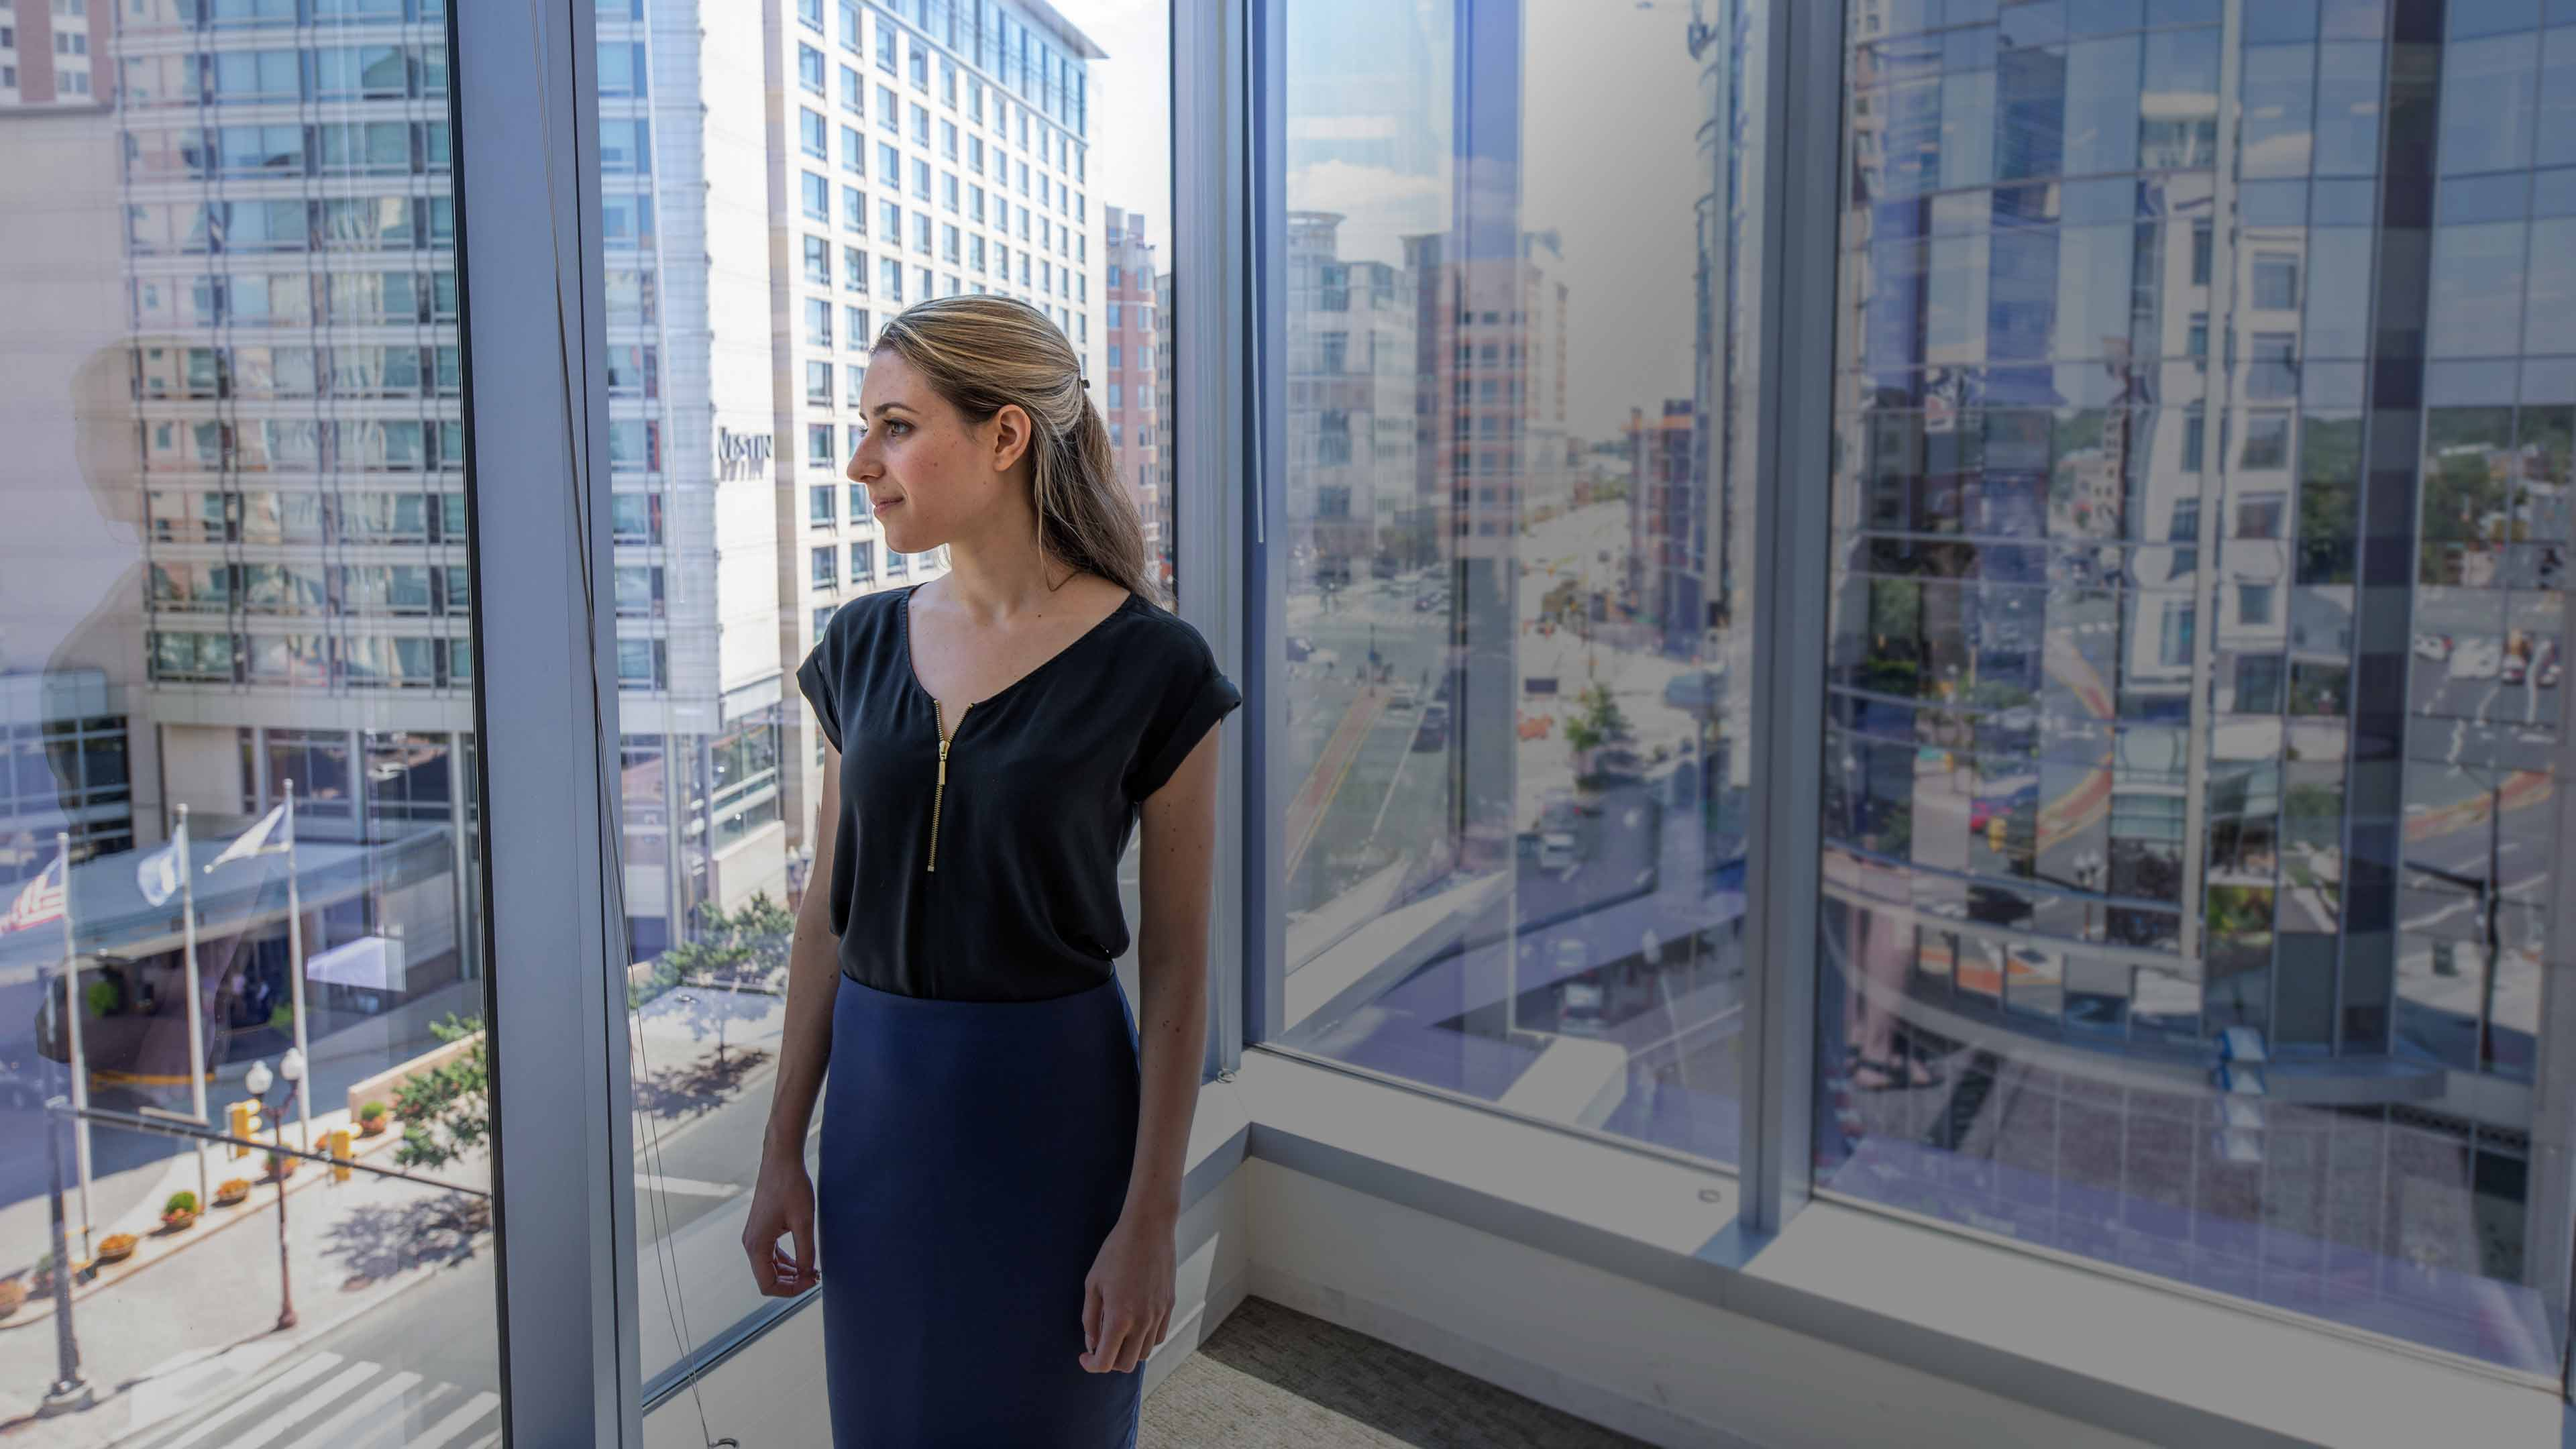 A woman stands in front of a window. Behind her stand tall buildings with large glass windows in a modern cityscape.